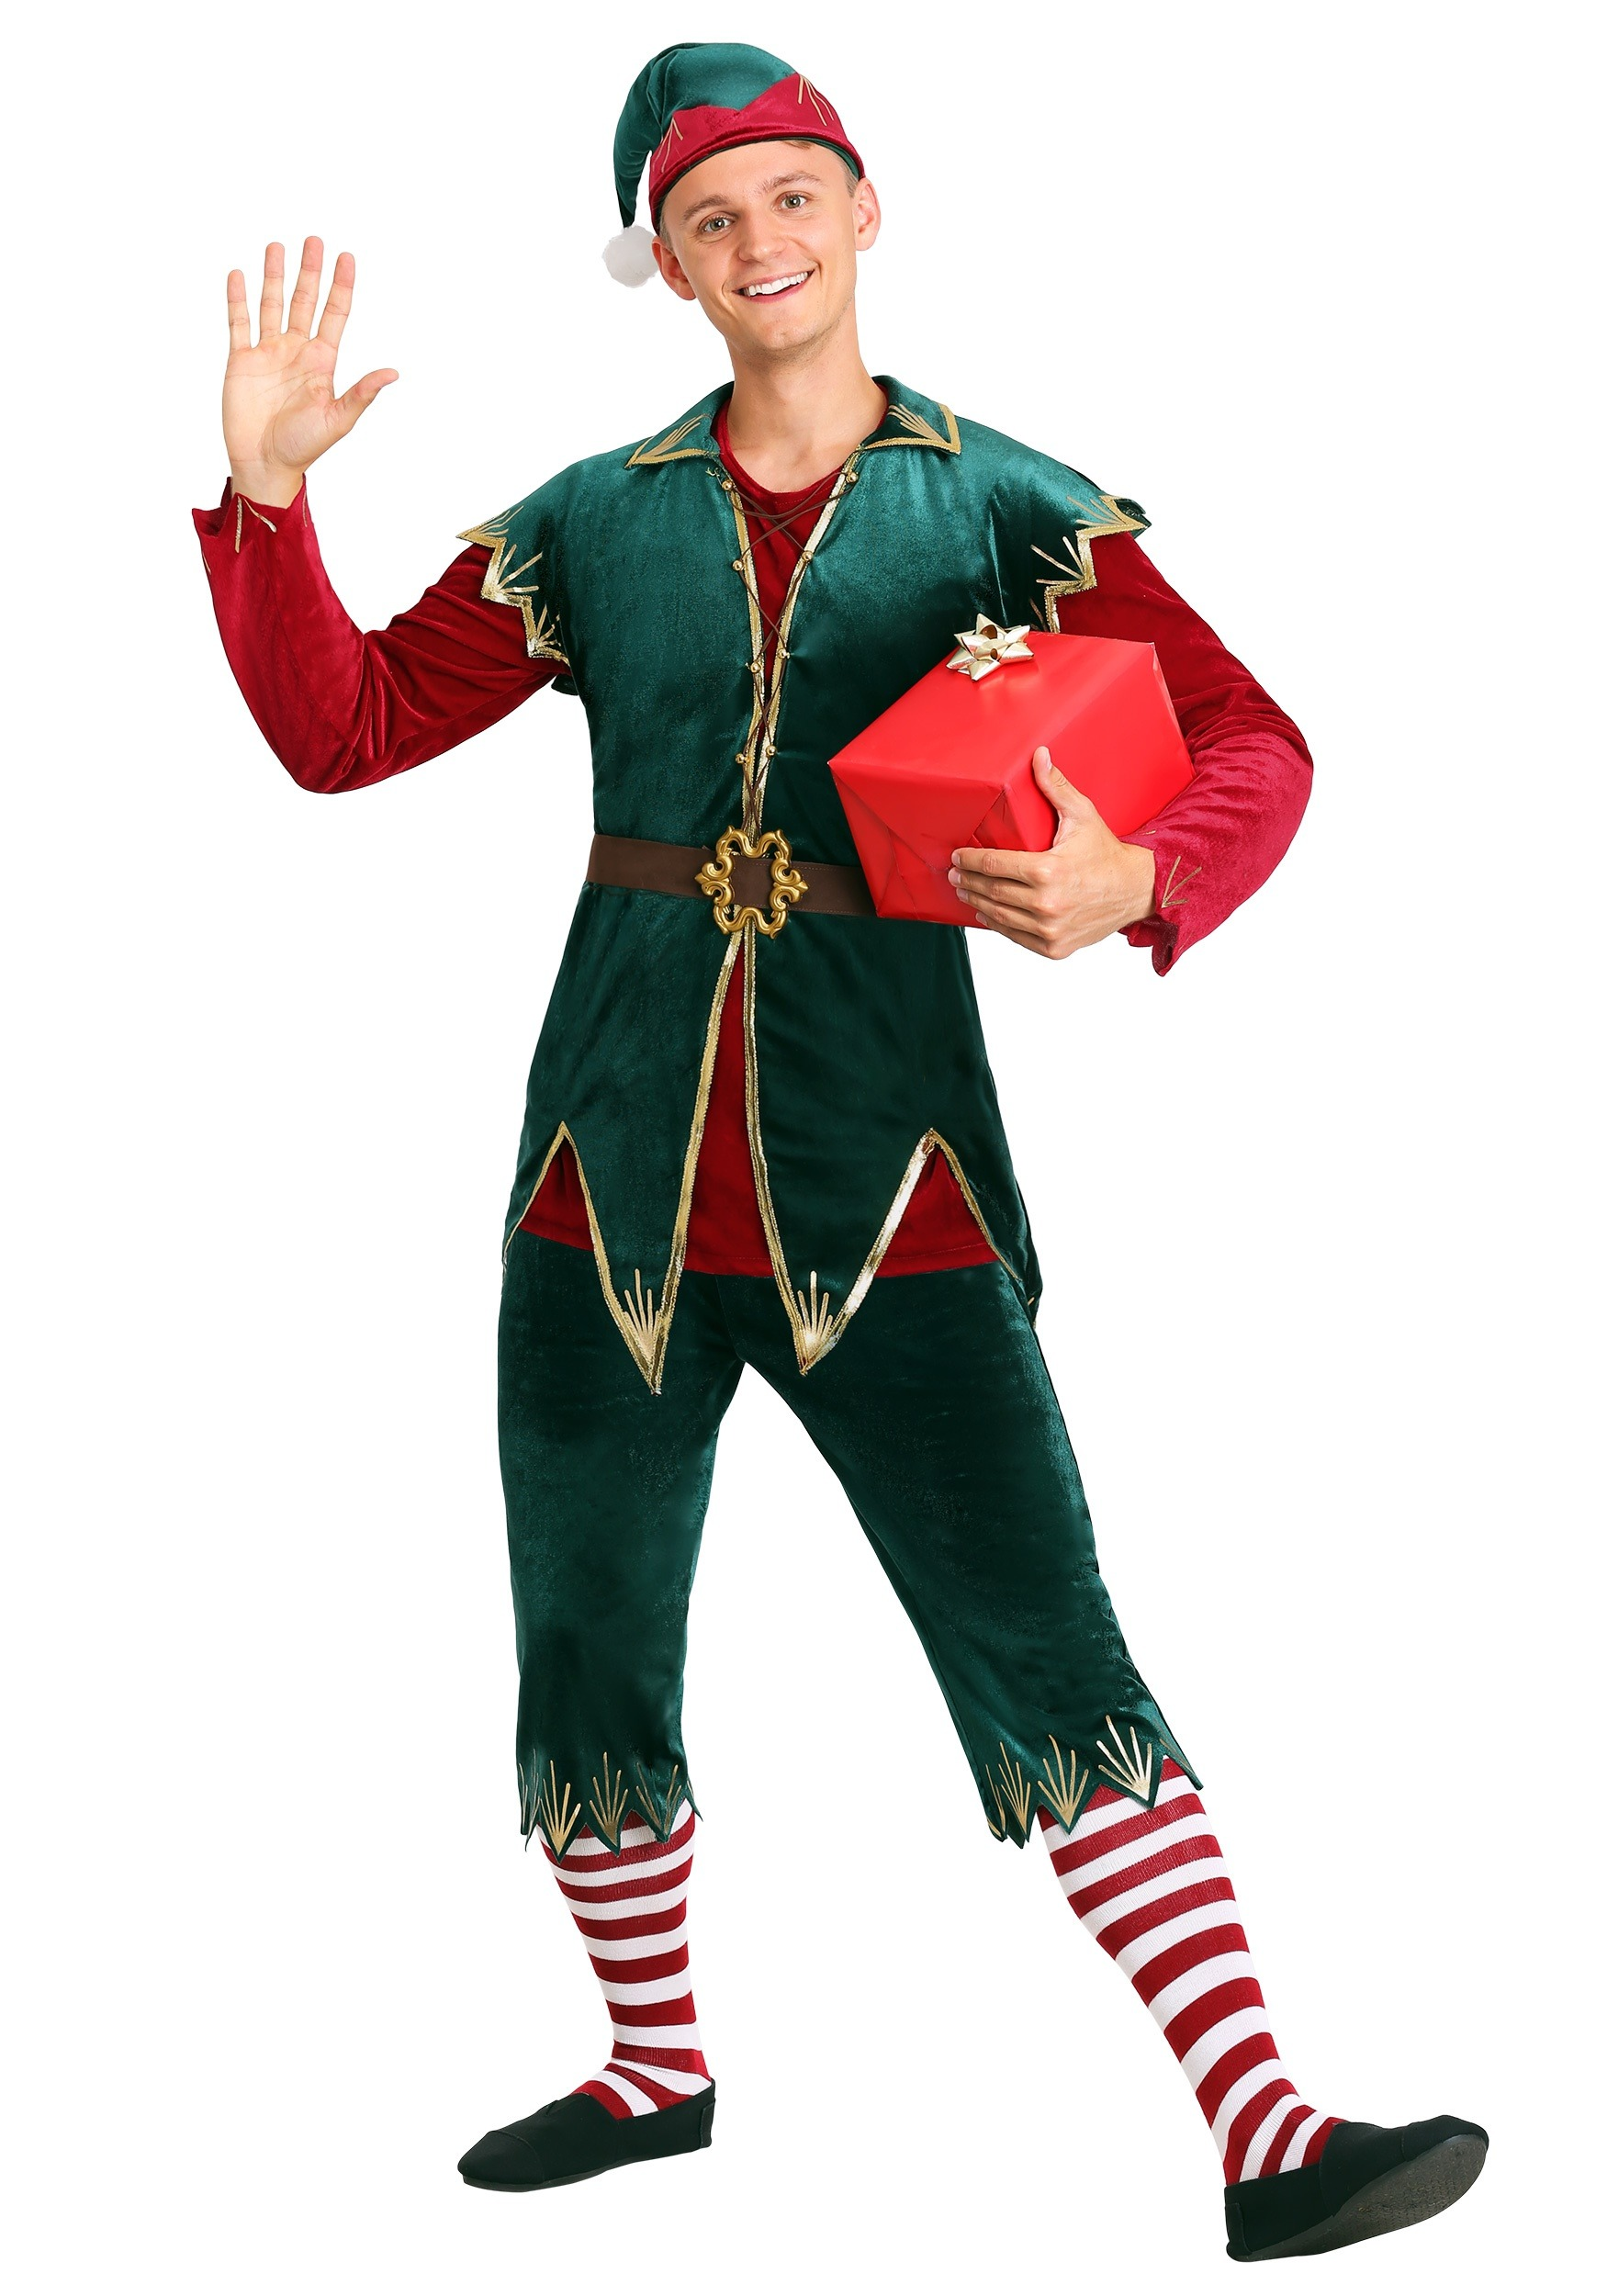 Christmas Elf Costume.Men S Deluxe Holiday Elf Costume